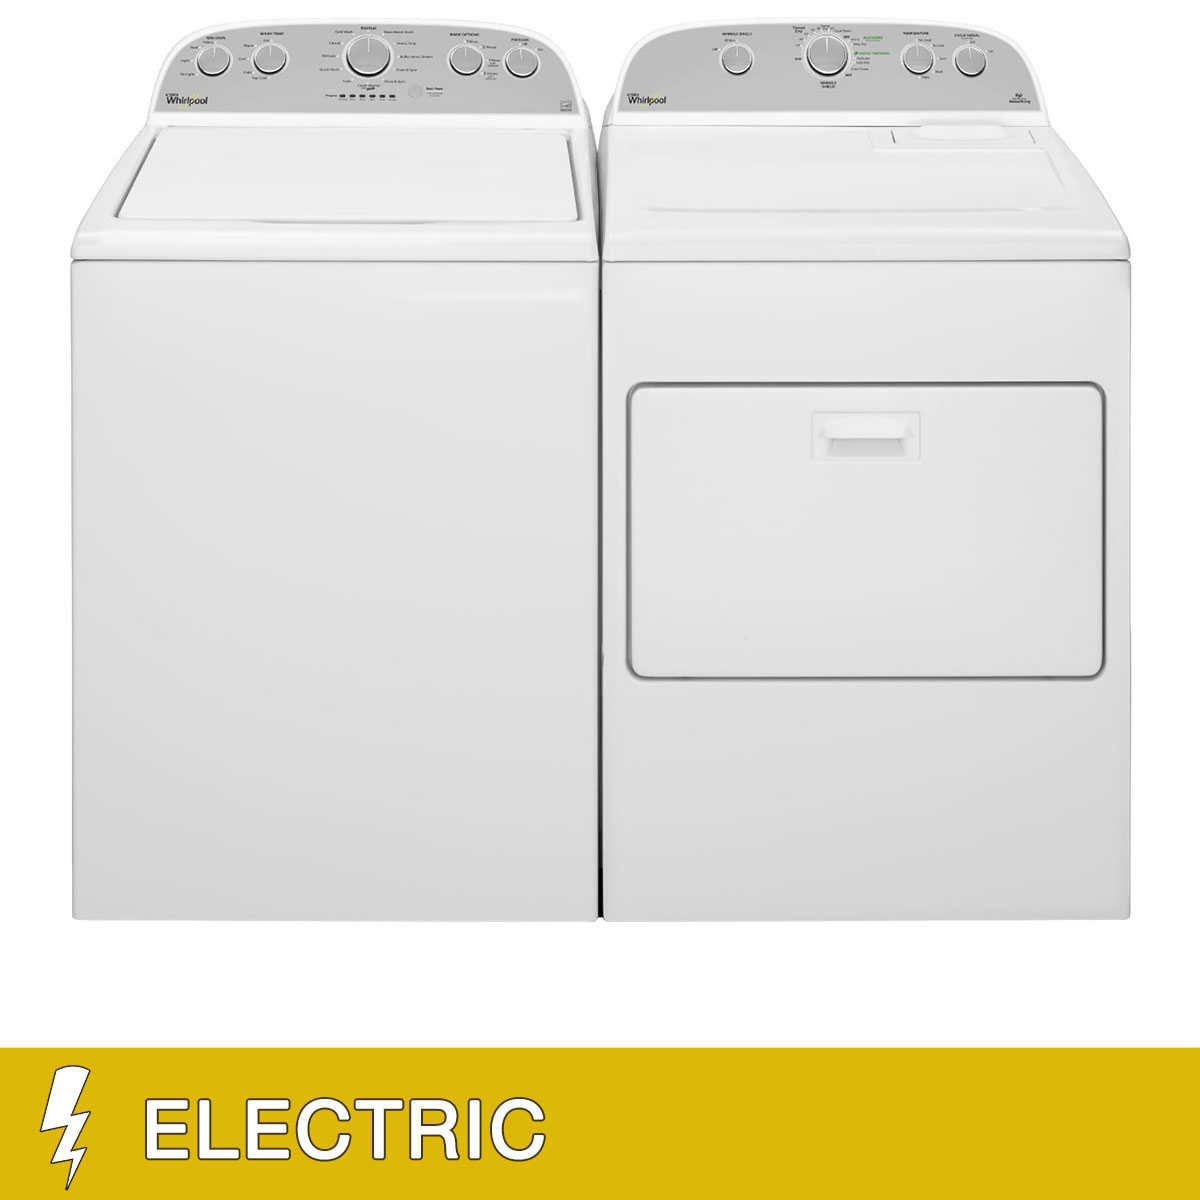 8afdb26b7f8 Whirlpool 4.3CuFt High-Efficiency Top Load Washer 7.0CuFt ELECTRIC Dryer in  White